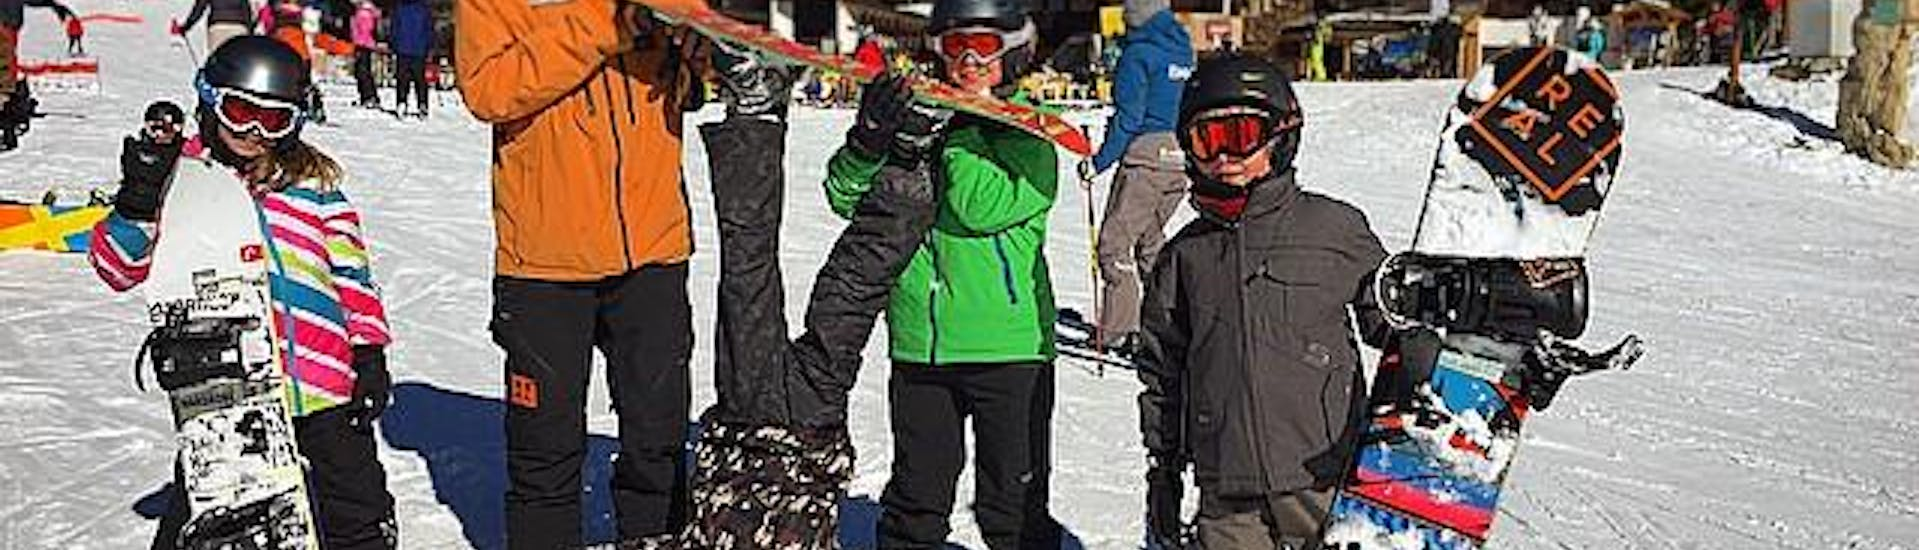 Kid's Christmas Snowboard Lessons!